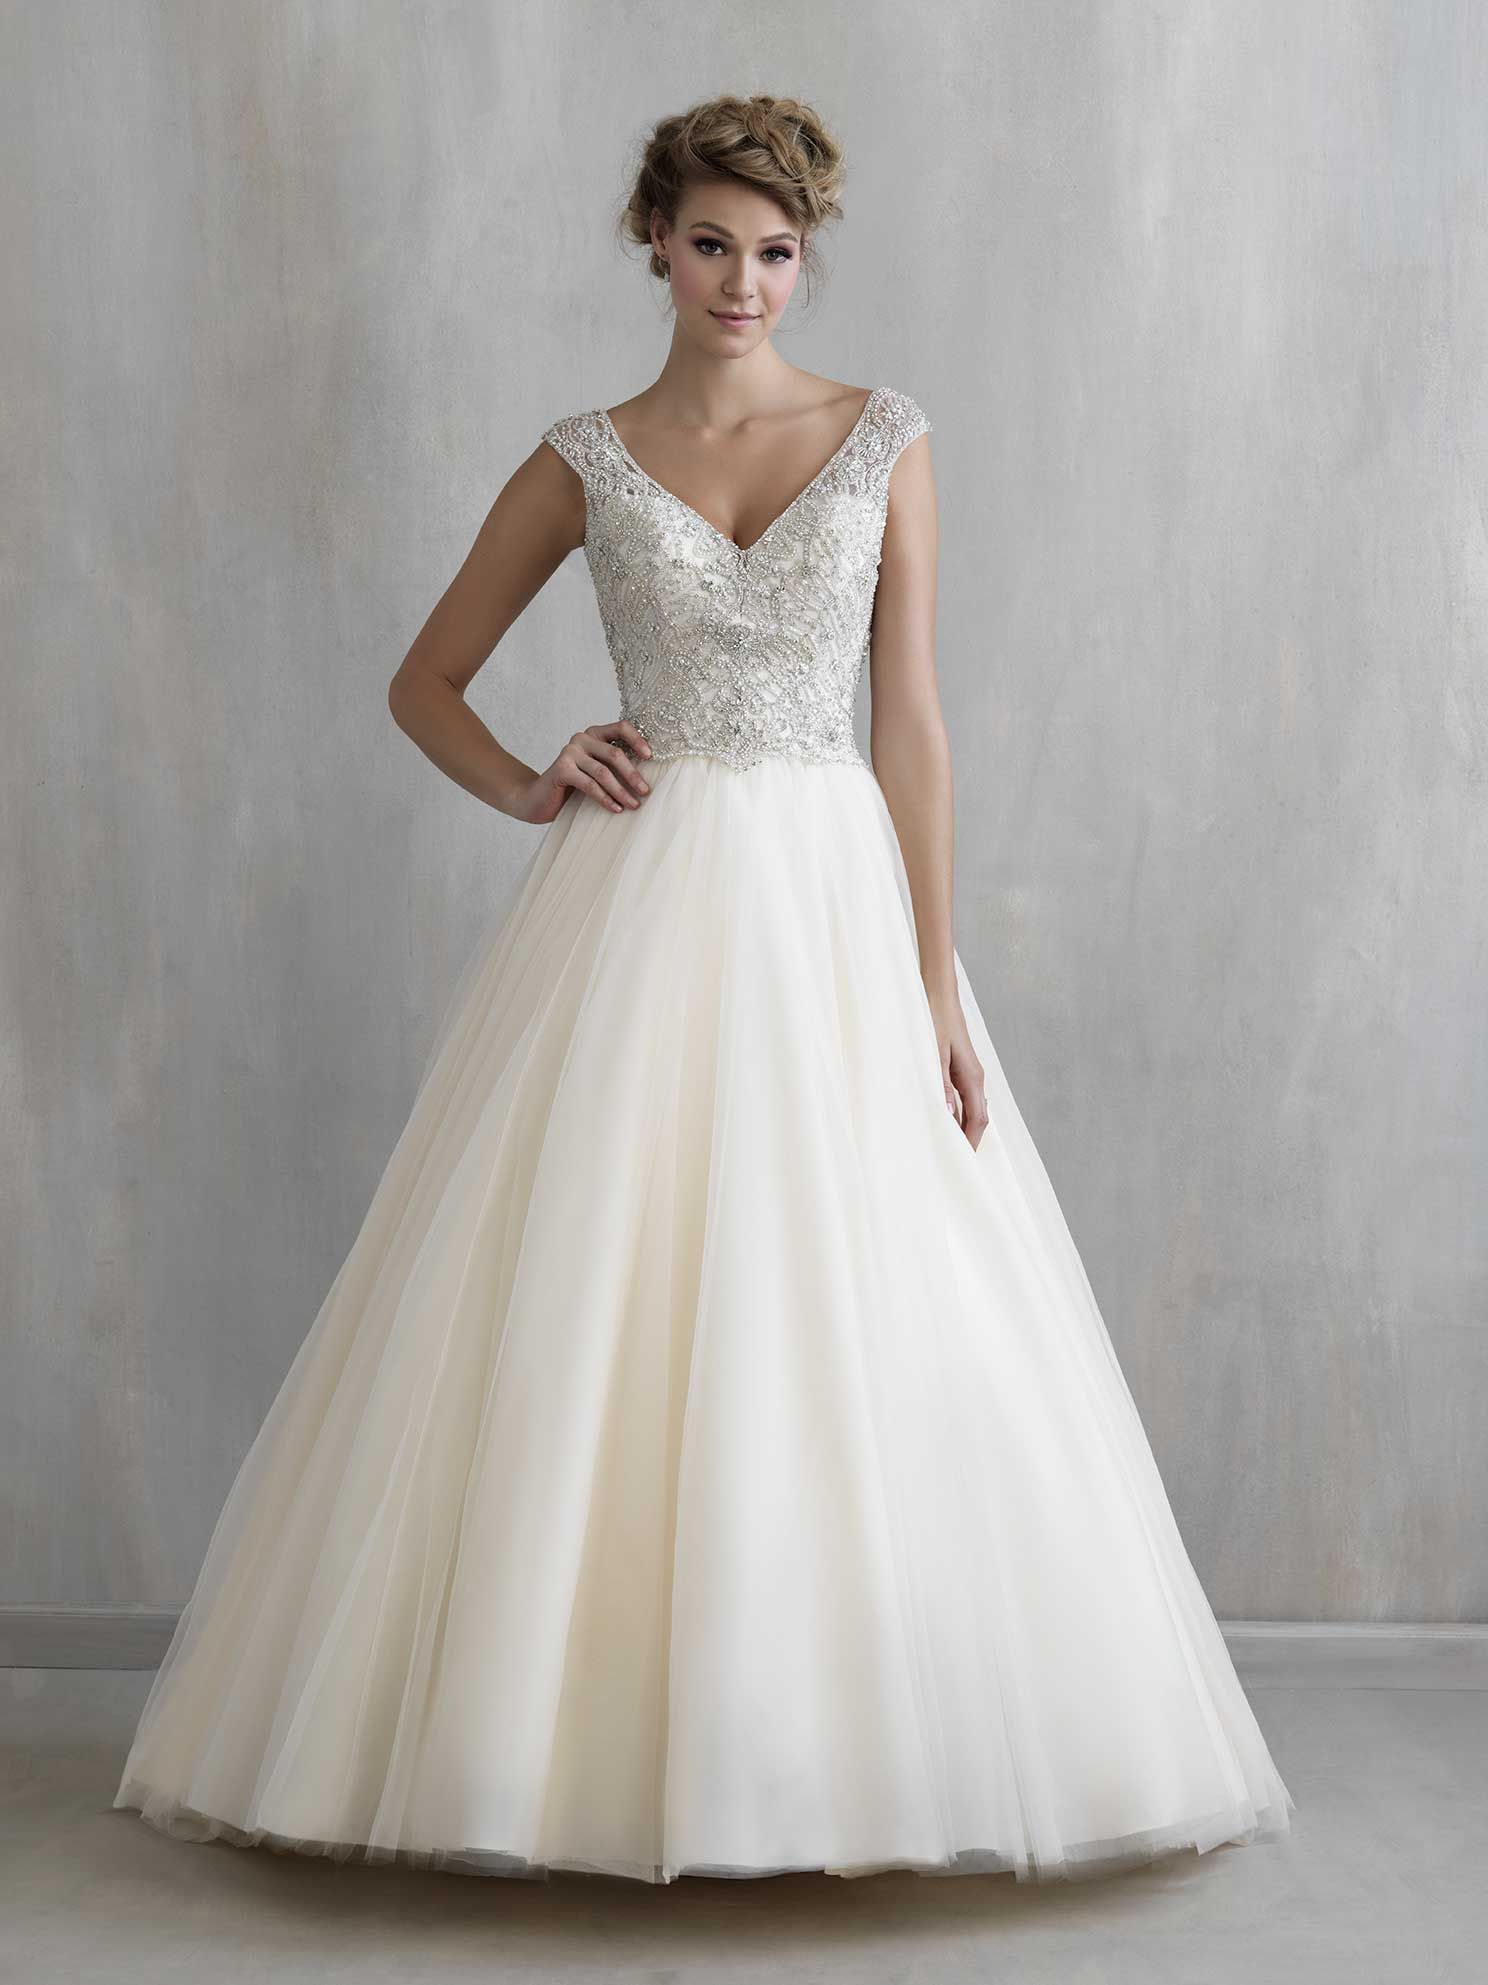 Discover The Madison James Bridal Gown Find Exceptional Gowns At Wedding Shoppe